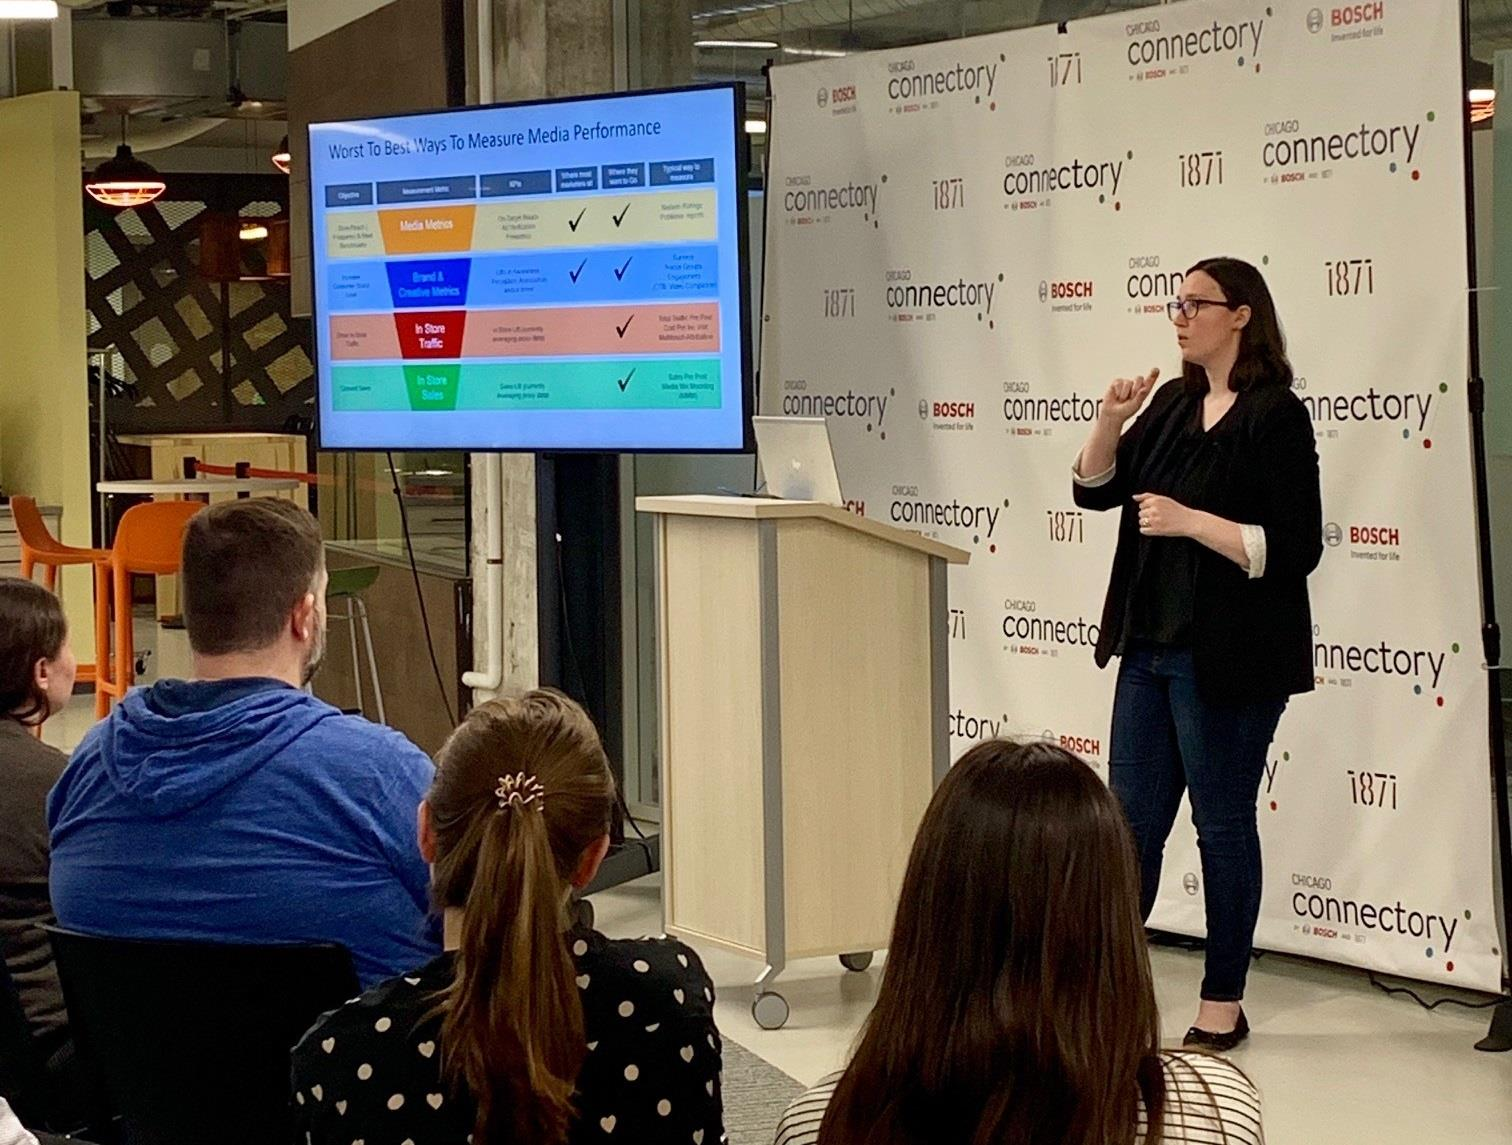 The Chicago Connectory Hosts Data Scientist from McDonald's